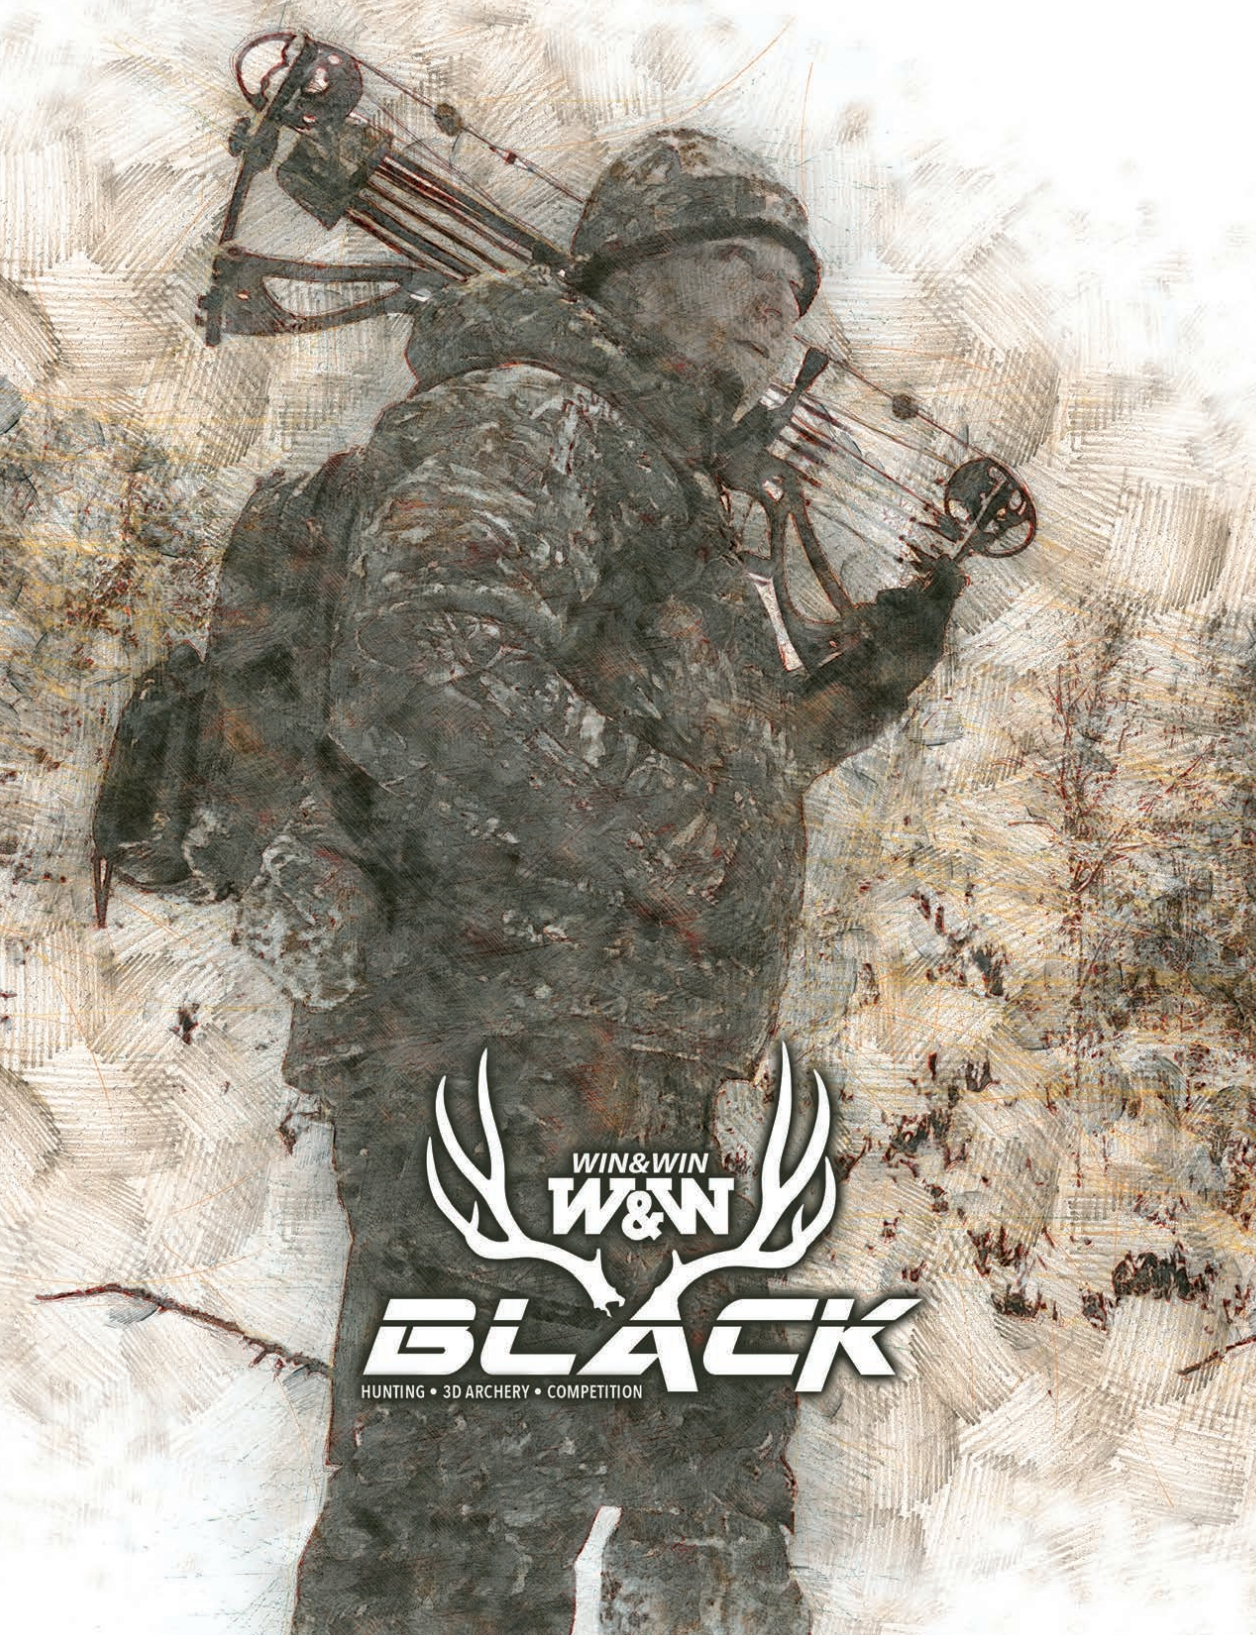 """Win & Win Black - The best technology for the most Competitive Archers and BowhuntersCARBON TECHNOLOGYCarbon """"nano-materials"""", """"nanotube"""", """"graphite"""" and """"nanofiber"""" are true 21st century materials. They can be made as small as 1/10,000th ofa human hair, and have superior mechanical, chemical, physical and magnetic properties. High-tech engineering creates the best carbonmaterial mixture for Win&Win bows, improving product quality and gaining archers' confidence. Scientists believe nano-materials are thebuilding blocks for the next generation of engineering.CARBON STABILITYCompound archers strive for higher arrow speeds, but this results in increased vibrations in the bow. Up until now, the use of aluminiumhas not been able to effectively deal with this. Win&Win specifically designed its range of premium carbon compound bows to addressthis issue."""